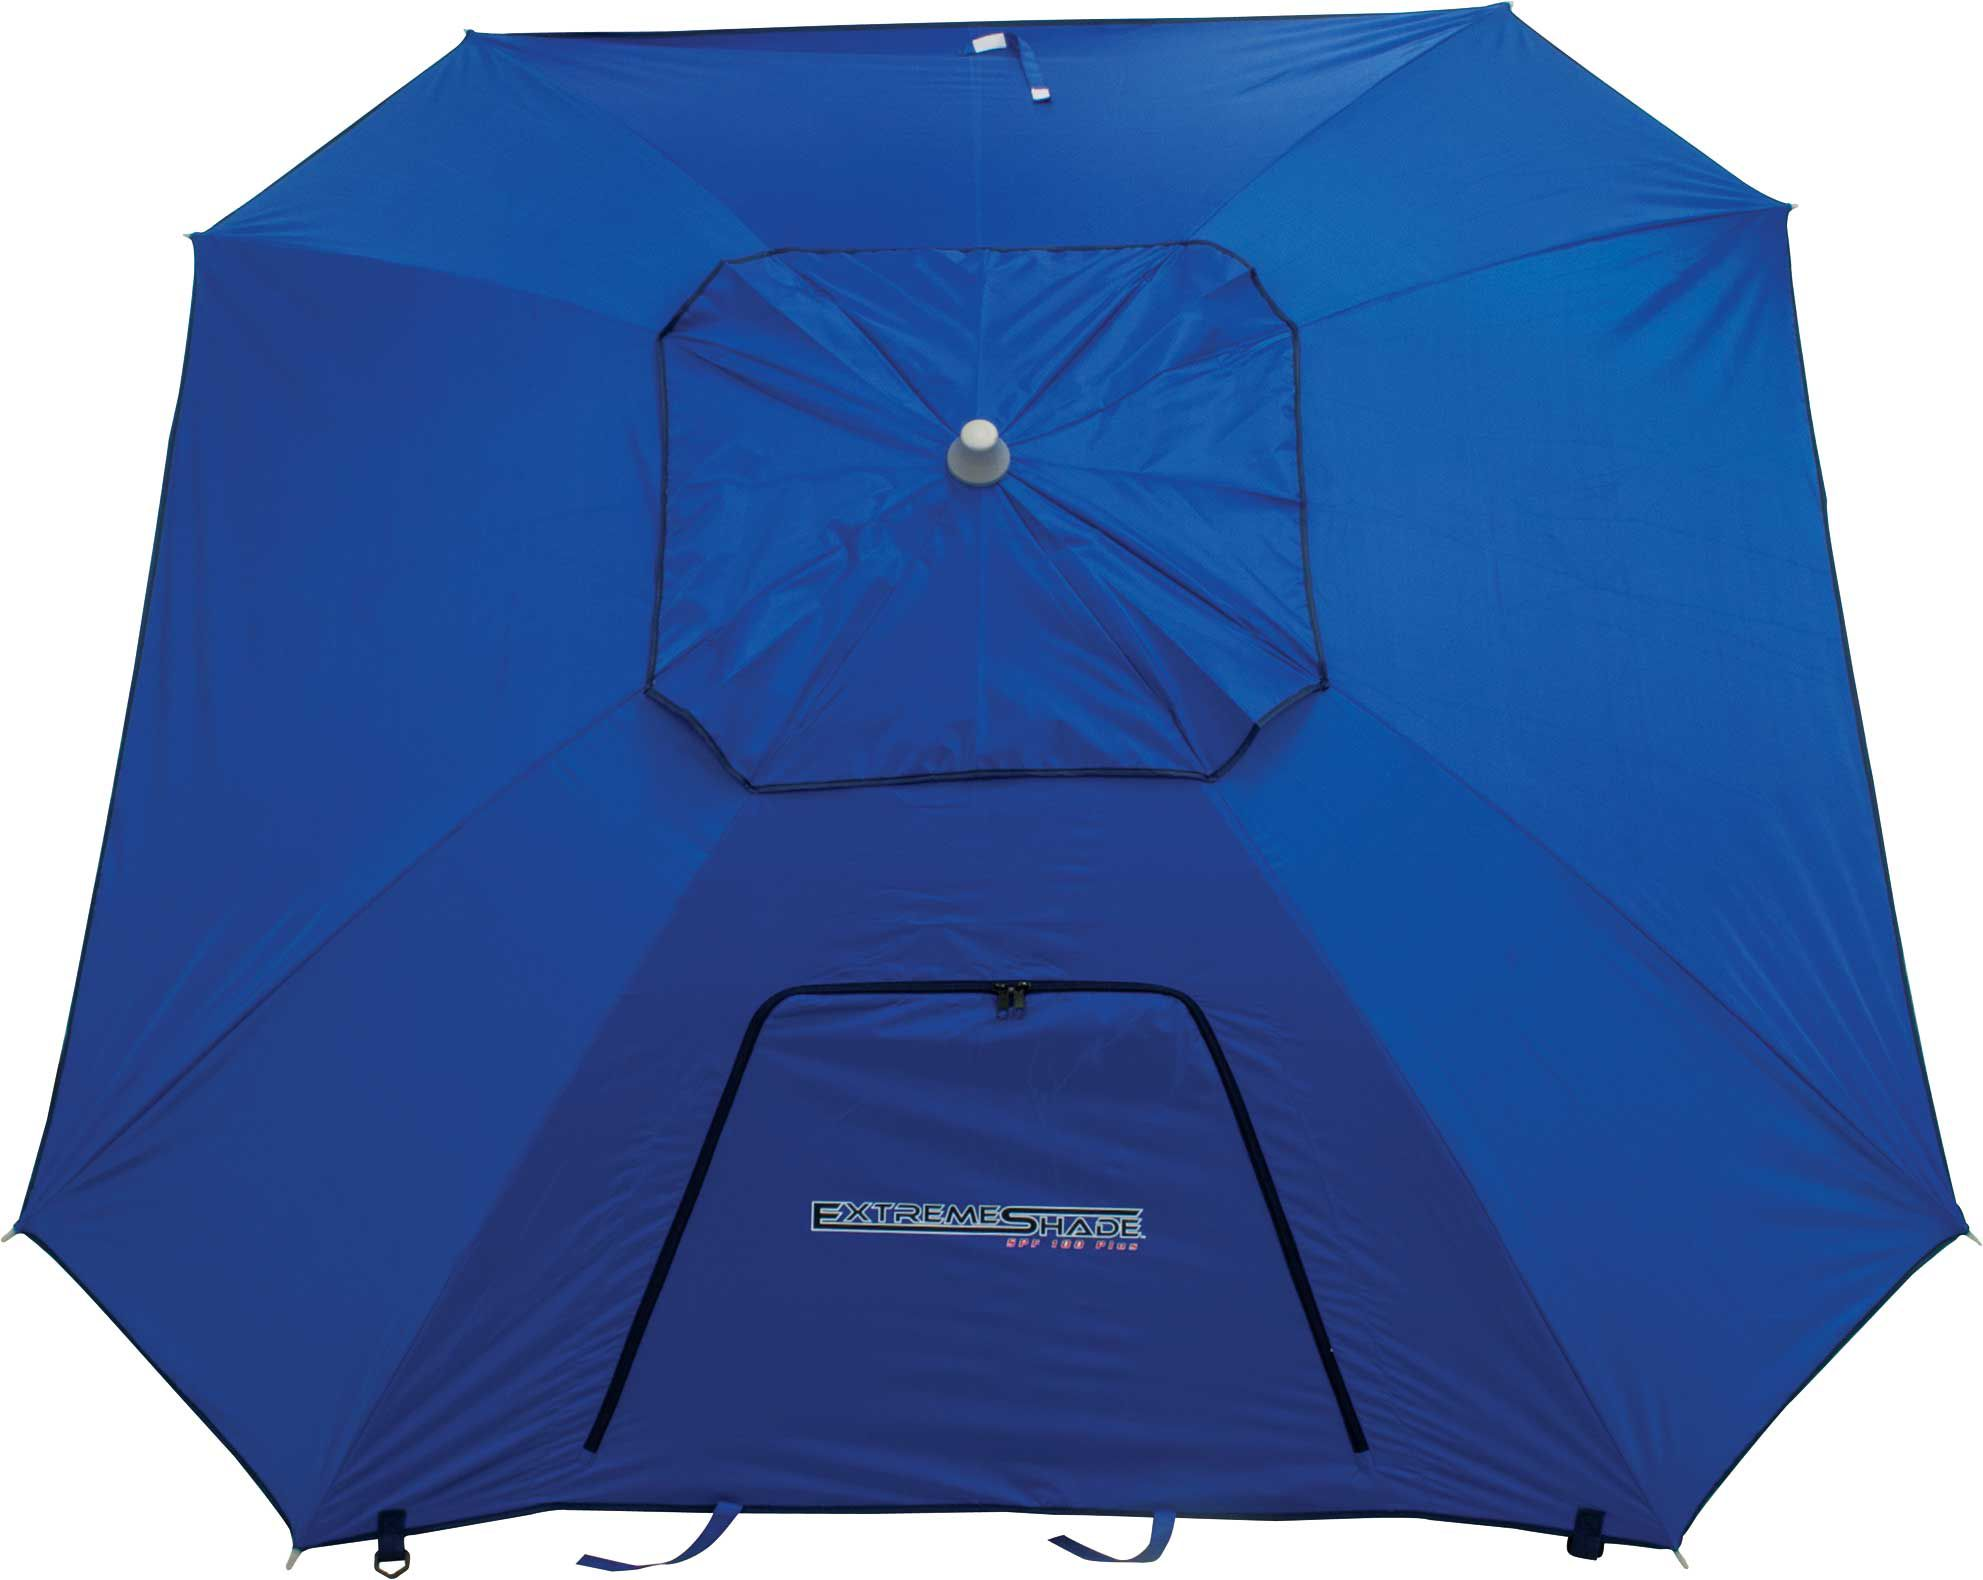 Product Image · RIO Extreme Shade 8u0027 Umbrella & Beach Tents Umbrellas u0026 Shades | Best Price Guarantee at DICKu0027S